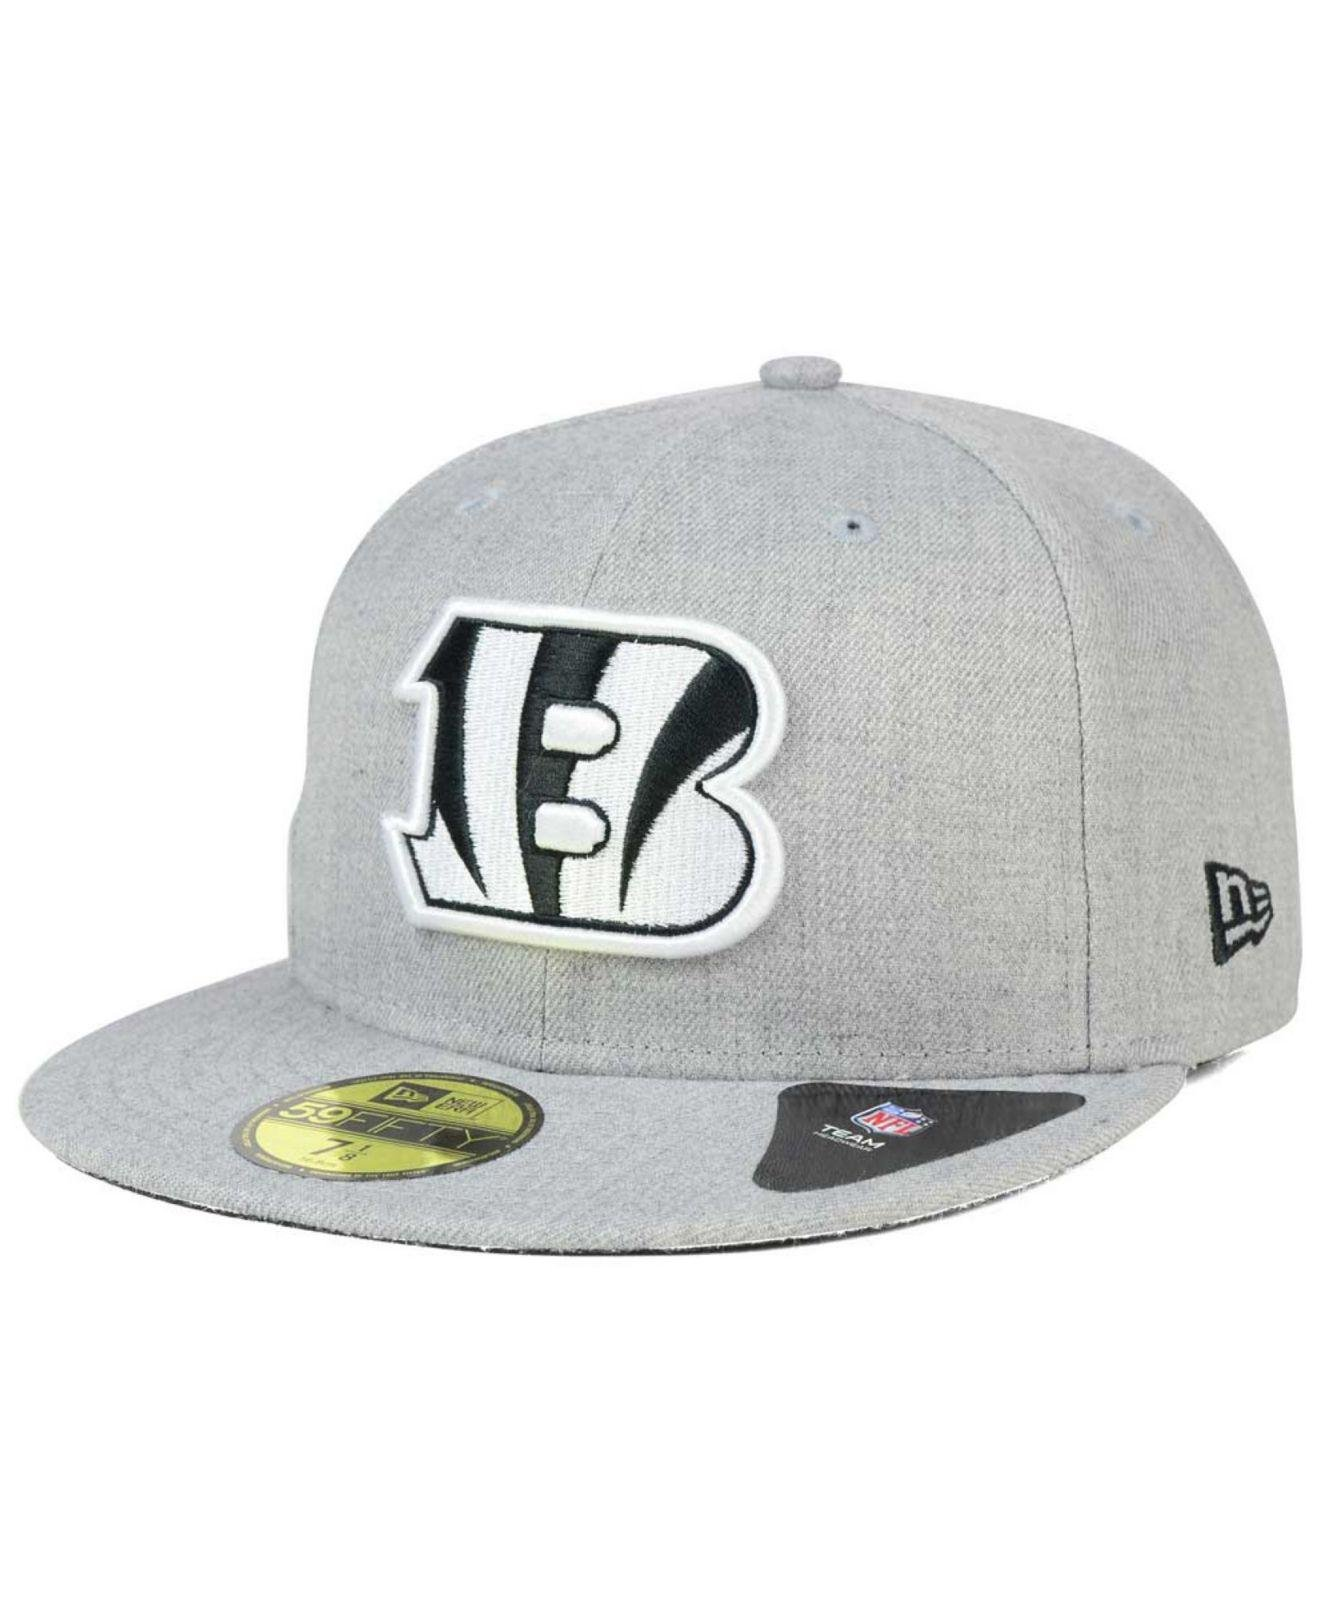 Lyst - KTZ Cincinnati Bengals Heather Black White 59fifty Cap in ... 638630324f3a